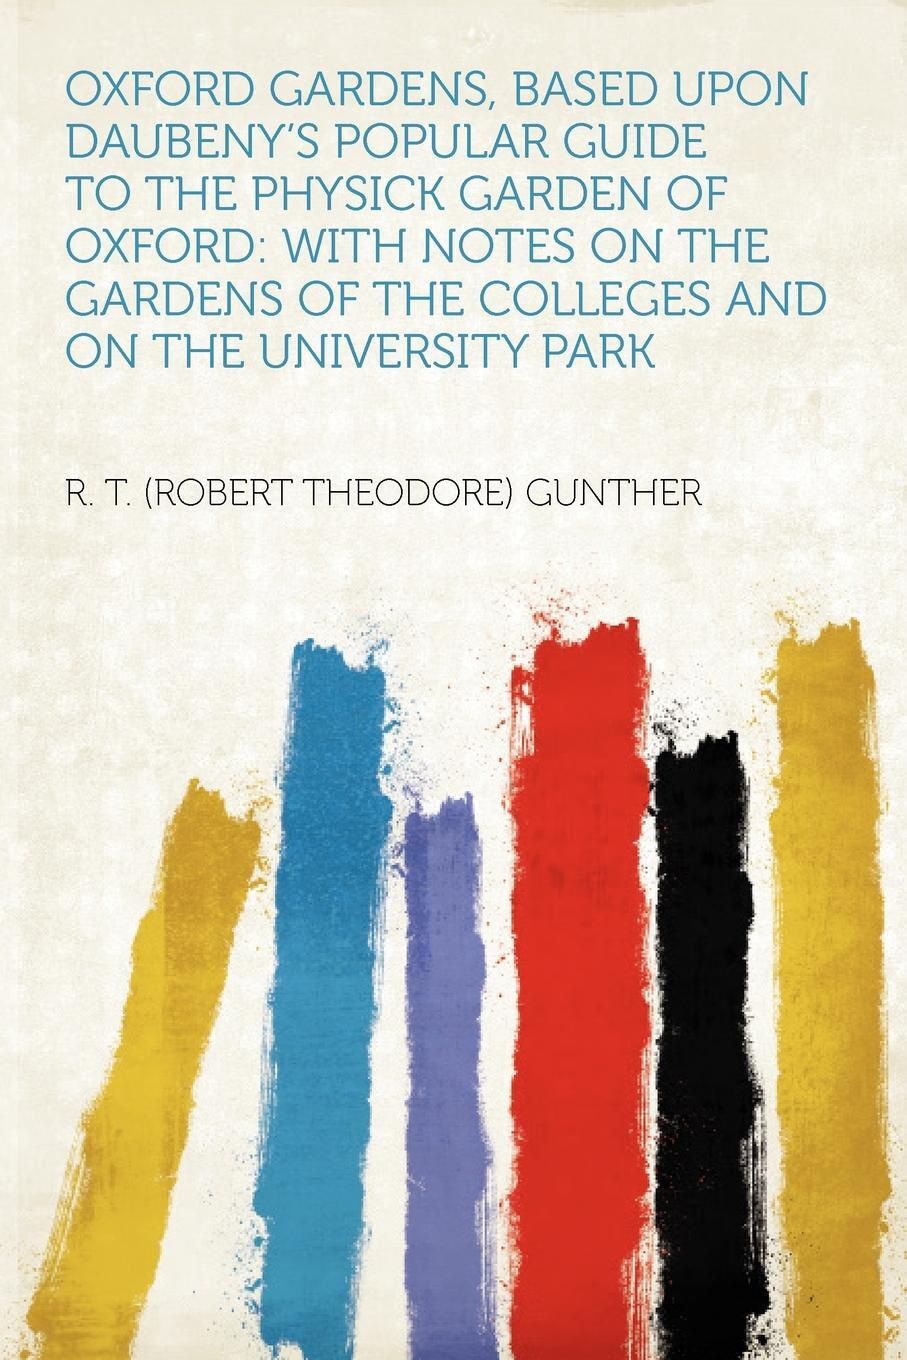 Oxford Gardens, Based Upon Daubeny`s Popular Guide to the Physick Garden of Oxford. With Notes on the Gardens of the Colleges and on the University Park. R. T. (Robert Theodore) Gunther